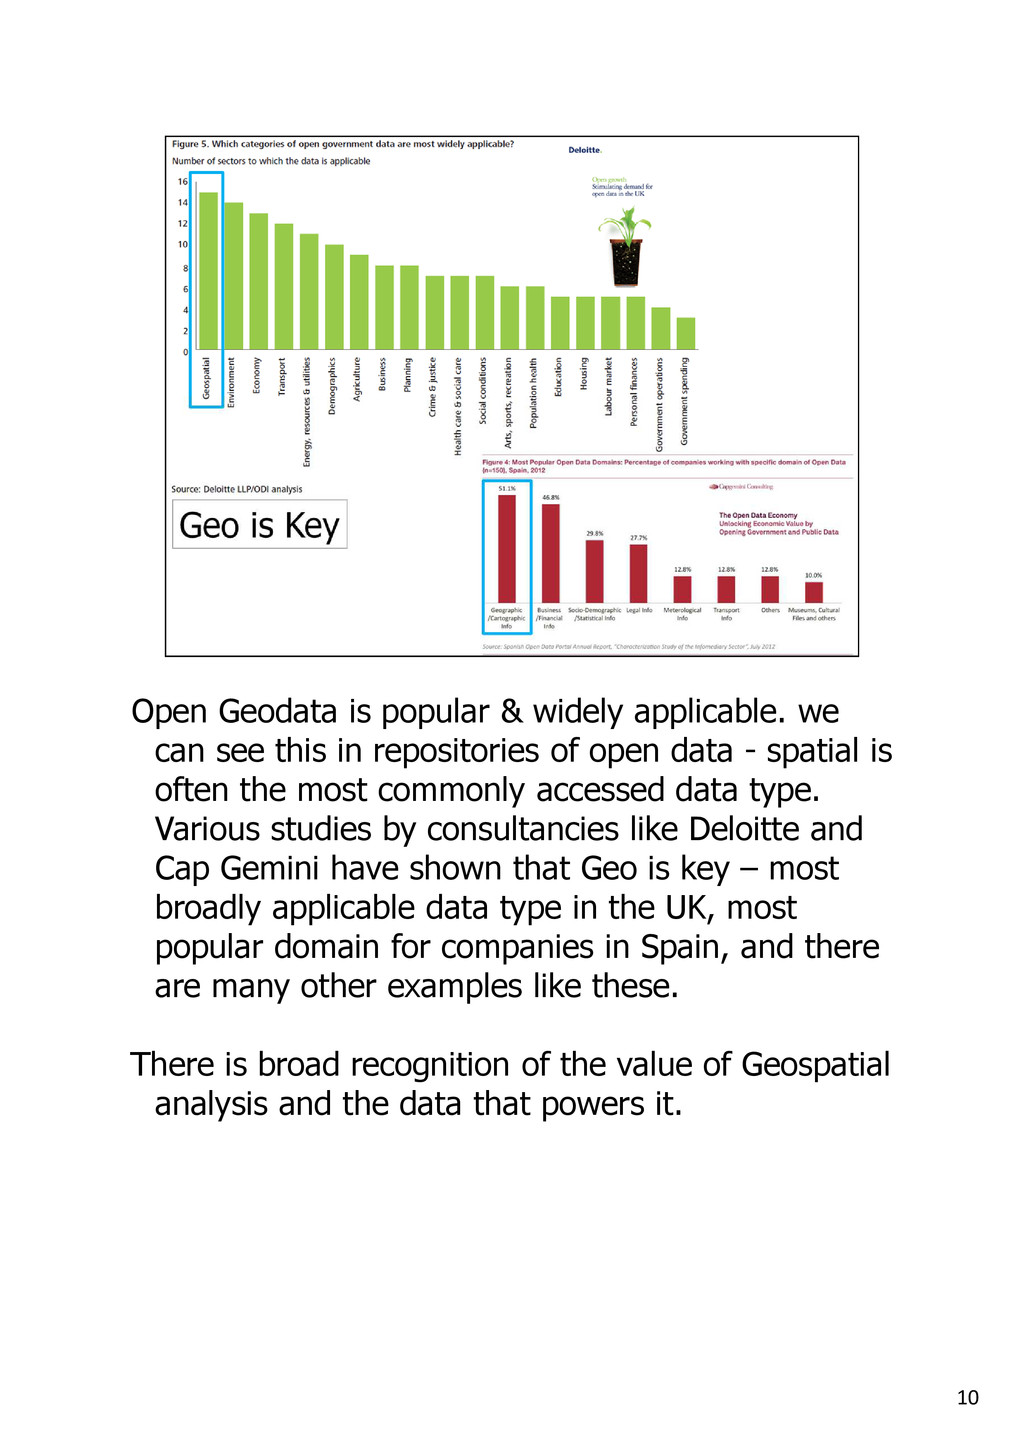 10 Open Geodata is popular & widely applicable....